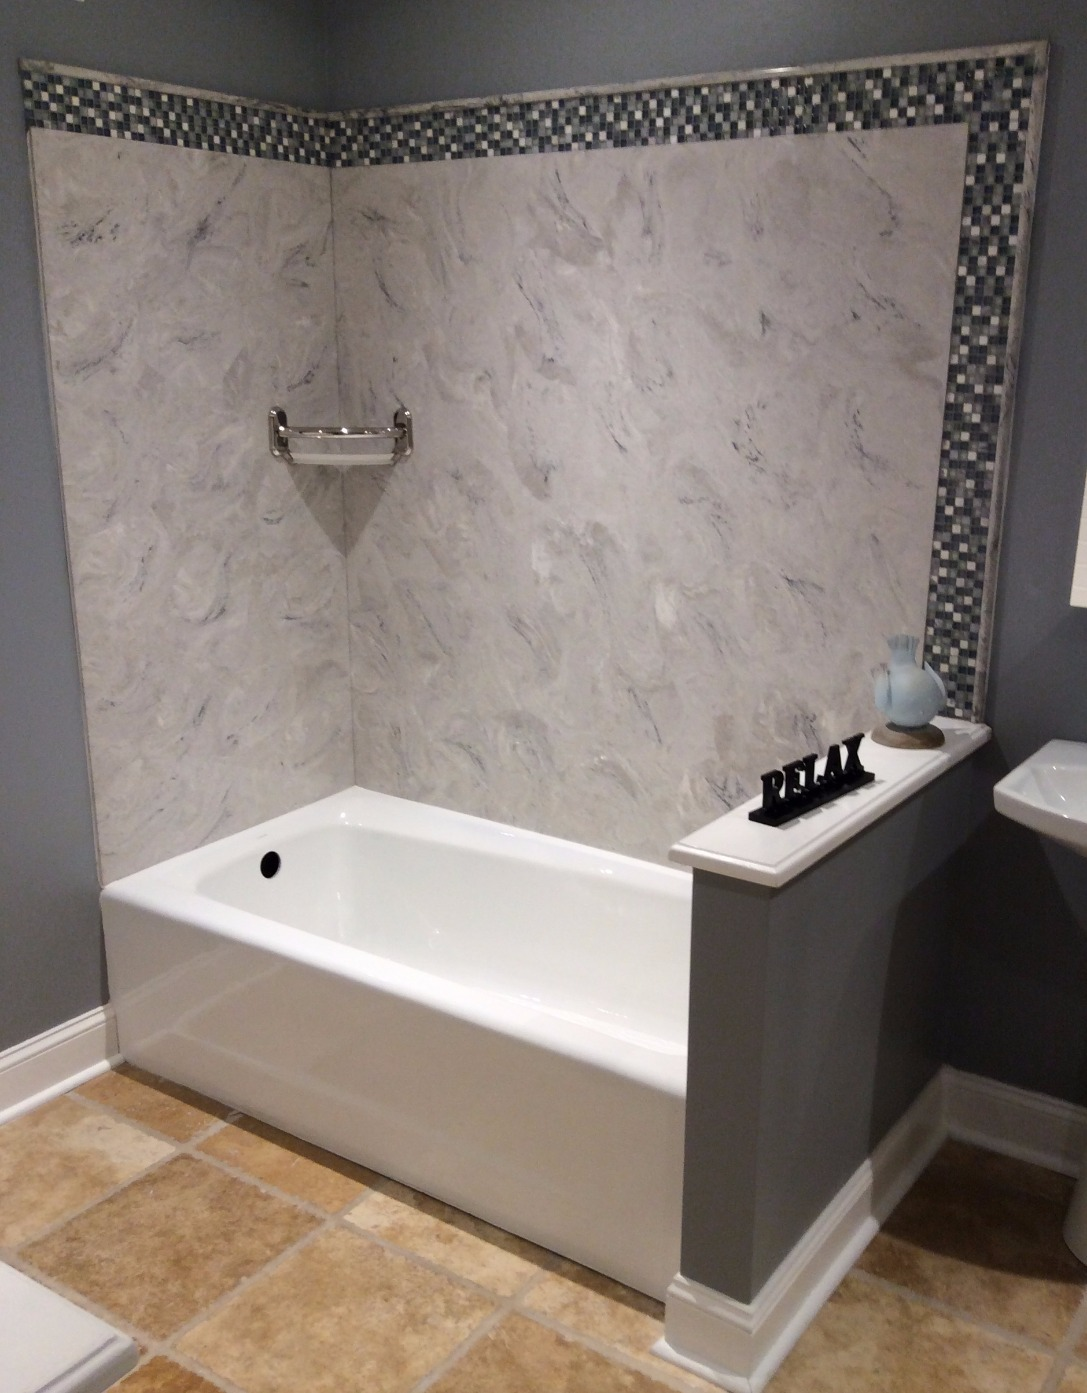 Kohler tub with Luicana panels